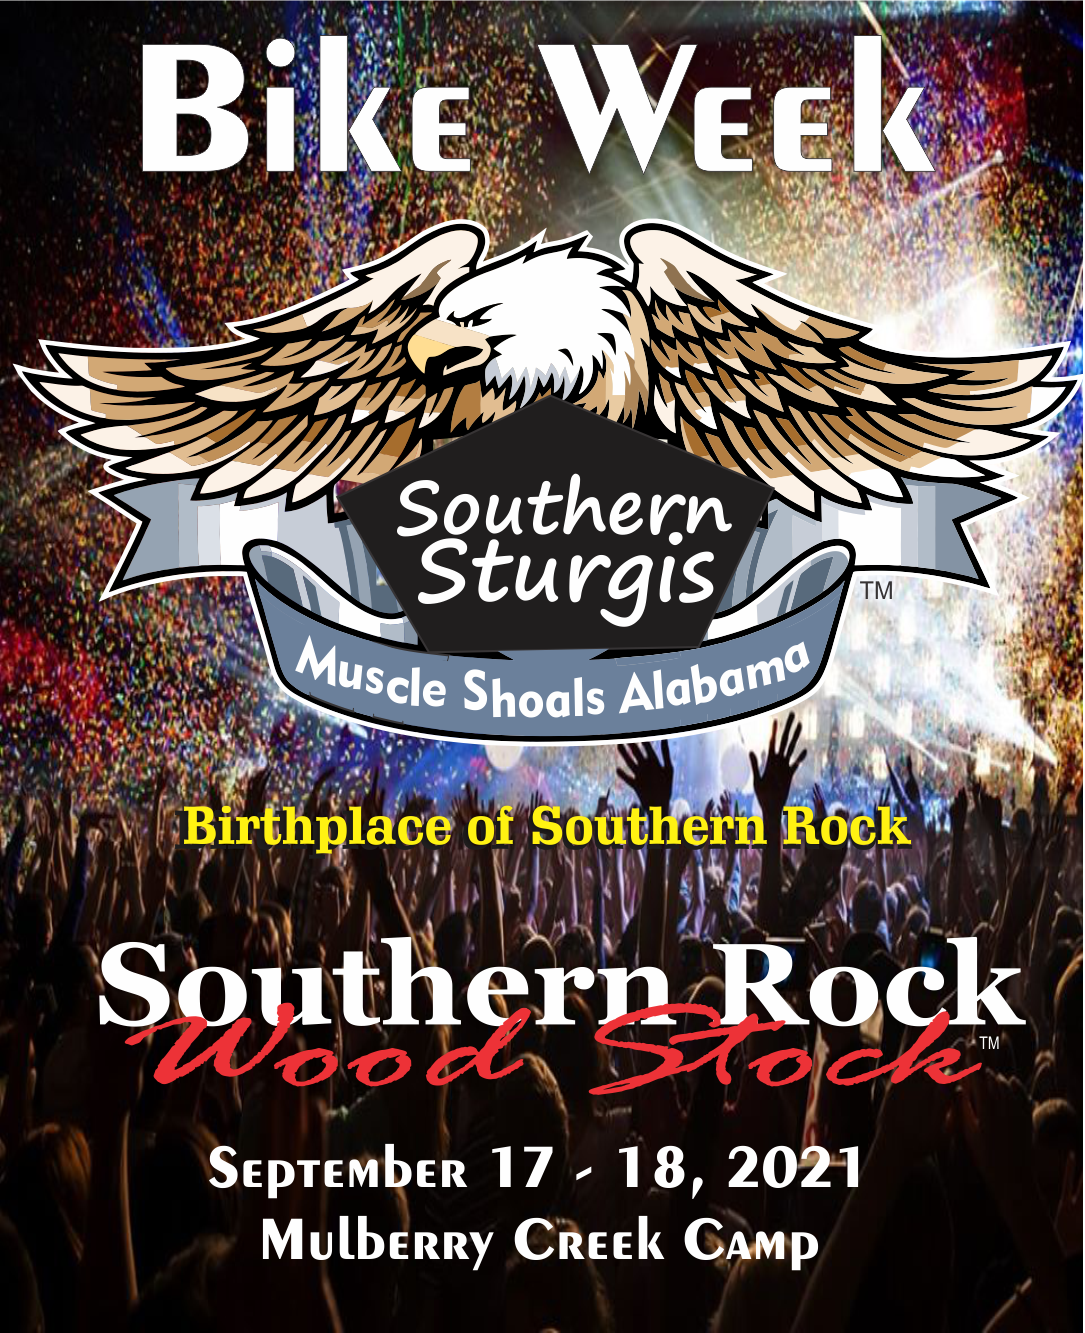 Southern Sturgis FRI Sept 17 & SAT Sept 18, 2021 Southern Rock Wood Stock on Sep 17, 13:00@Mulberry Creek Camp - Buy tickets and Get information on www.southernrockwoodstock.com southernrockwoodstock